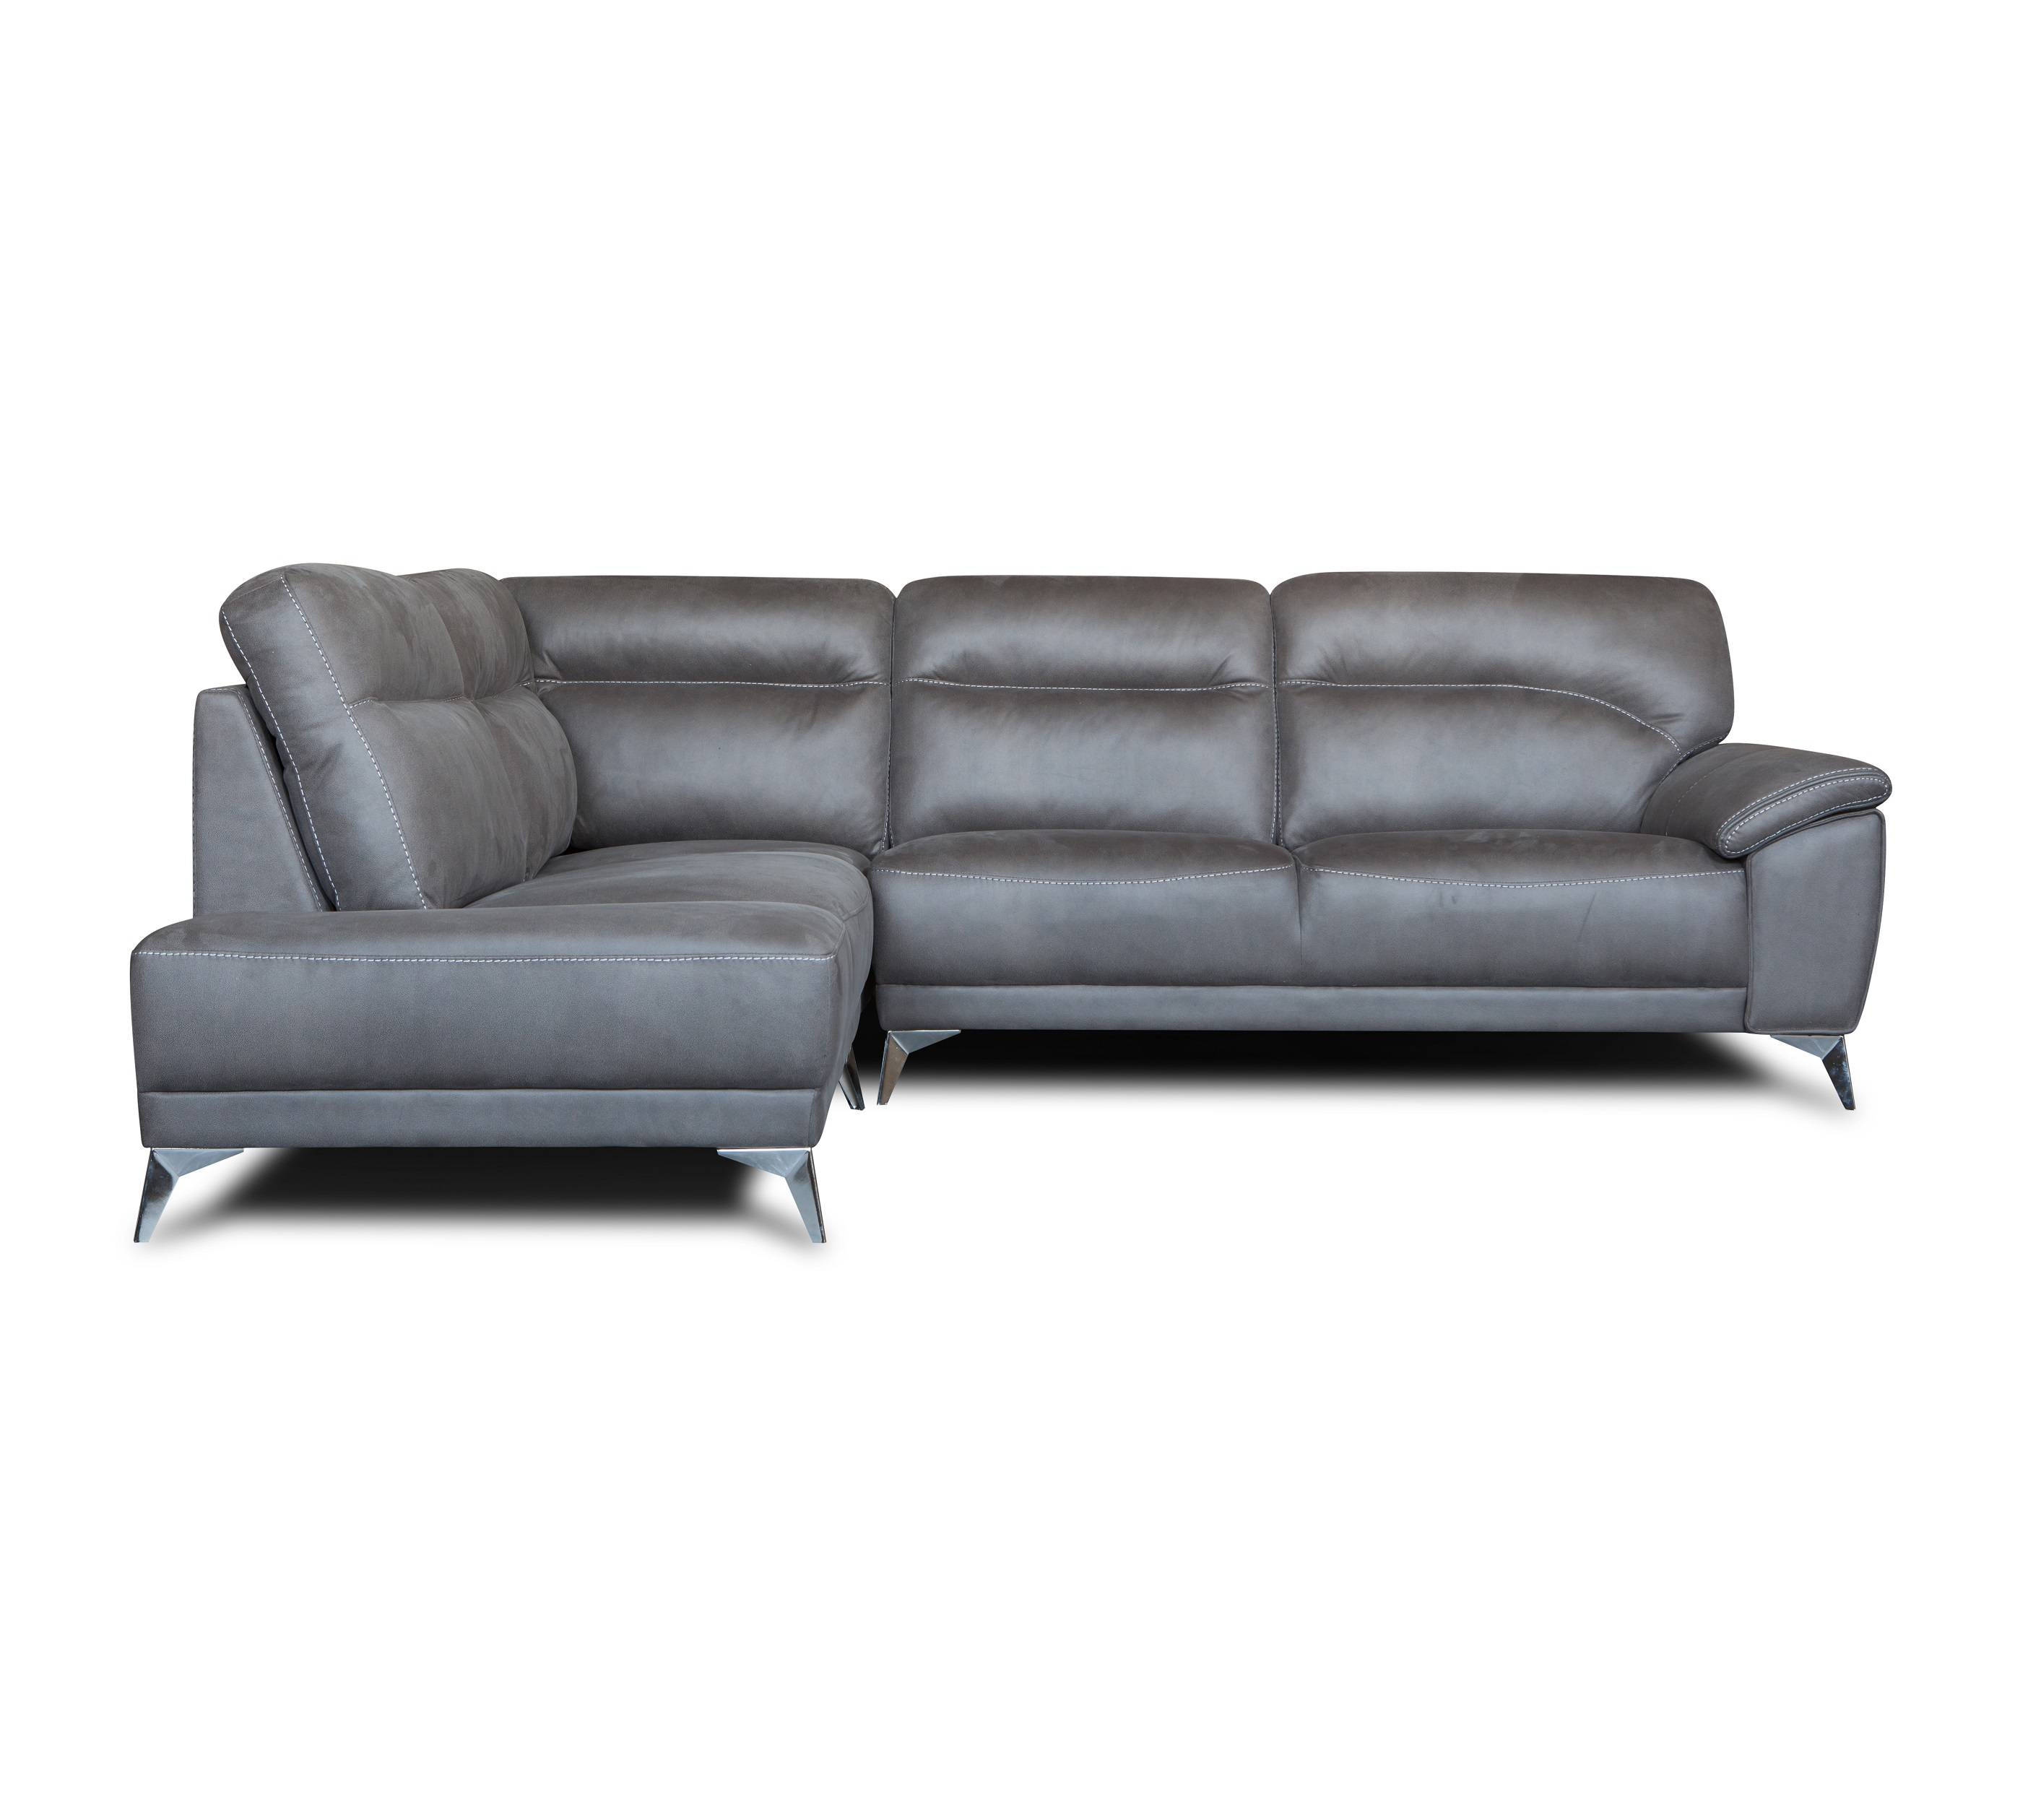 American style 3 2 1 set modern leather furniture corner sofa